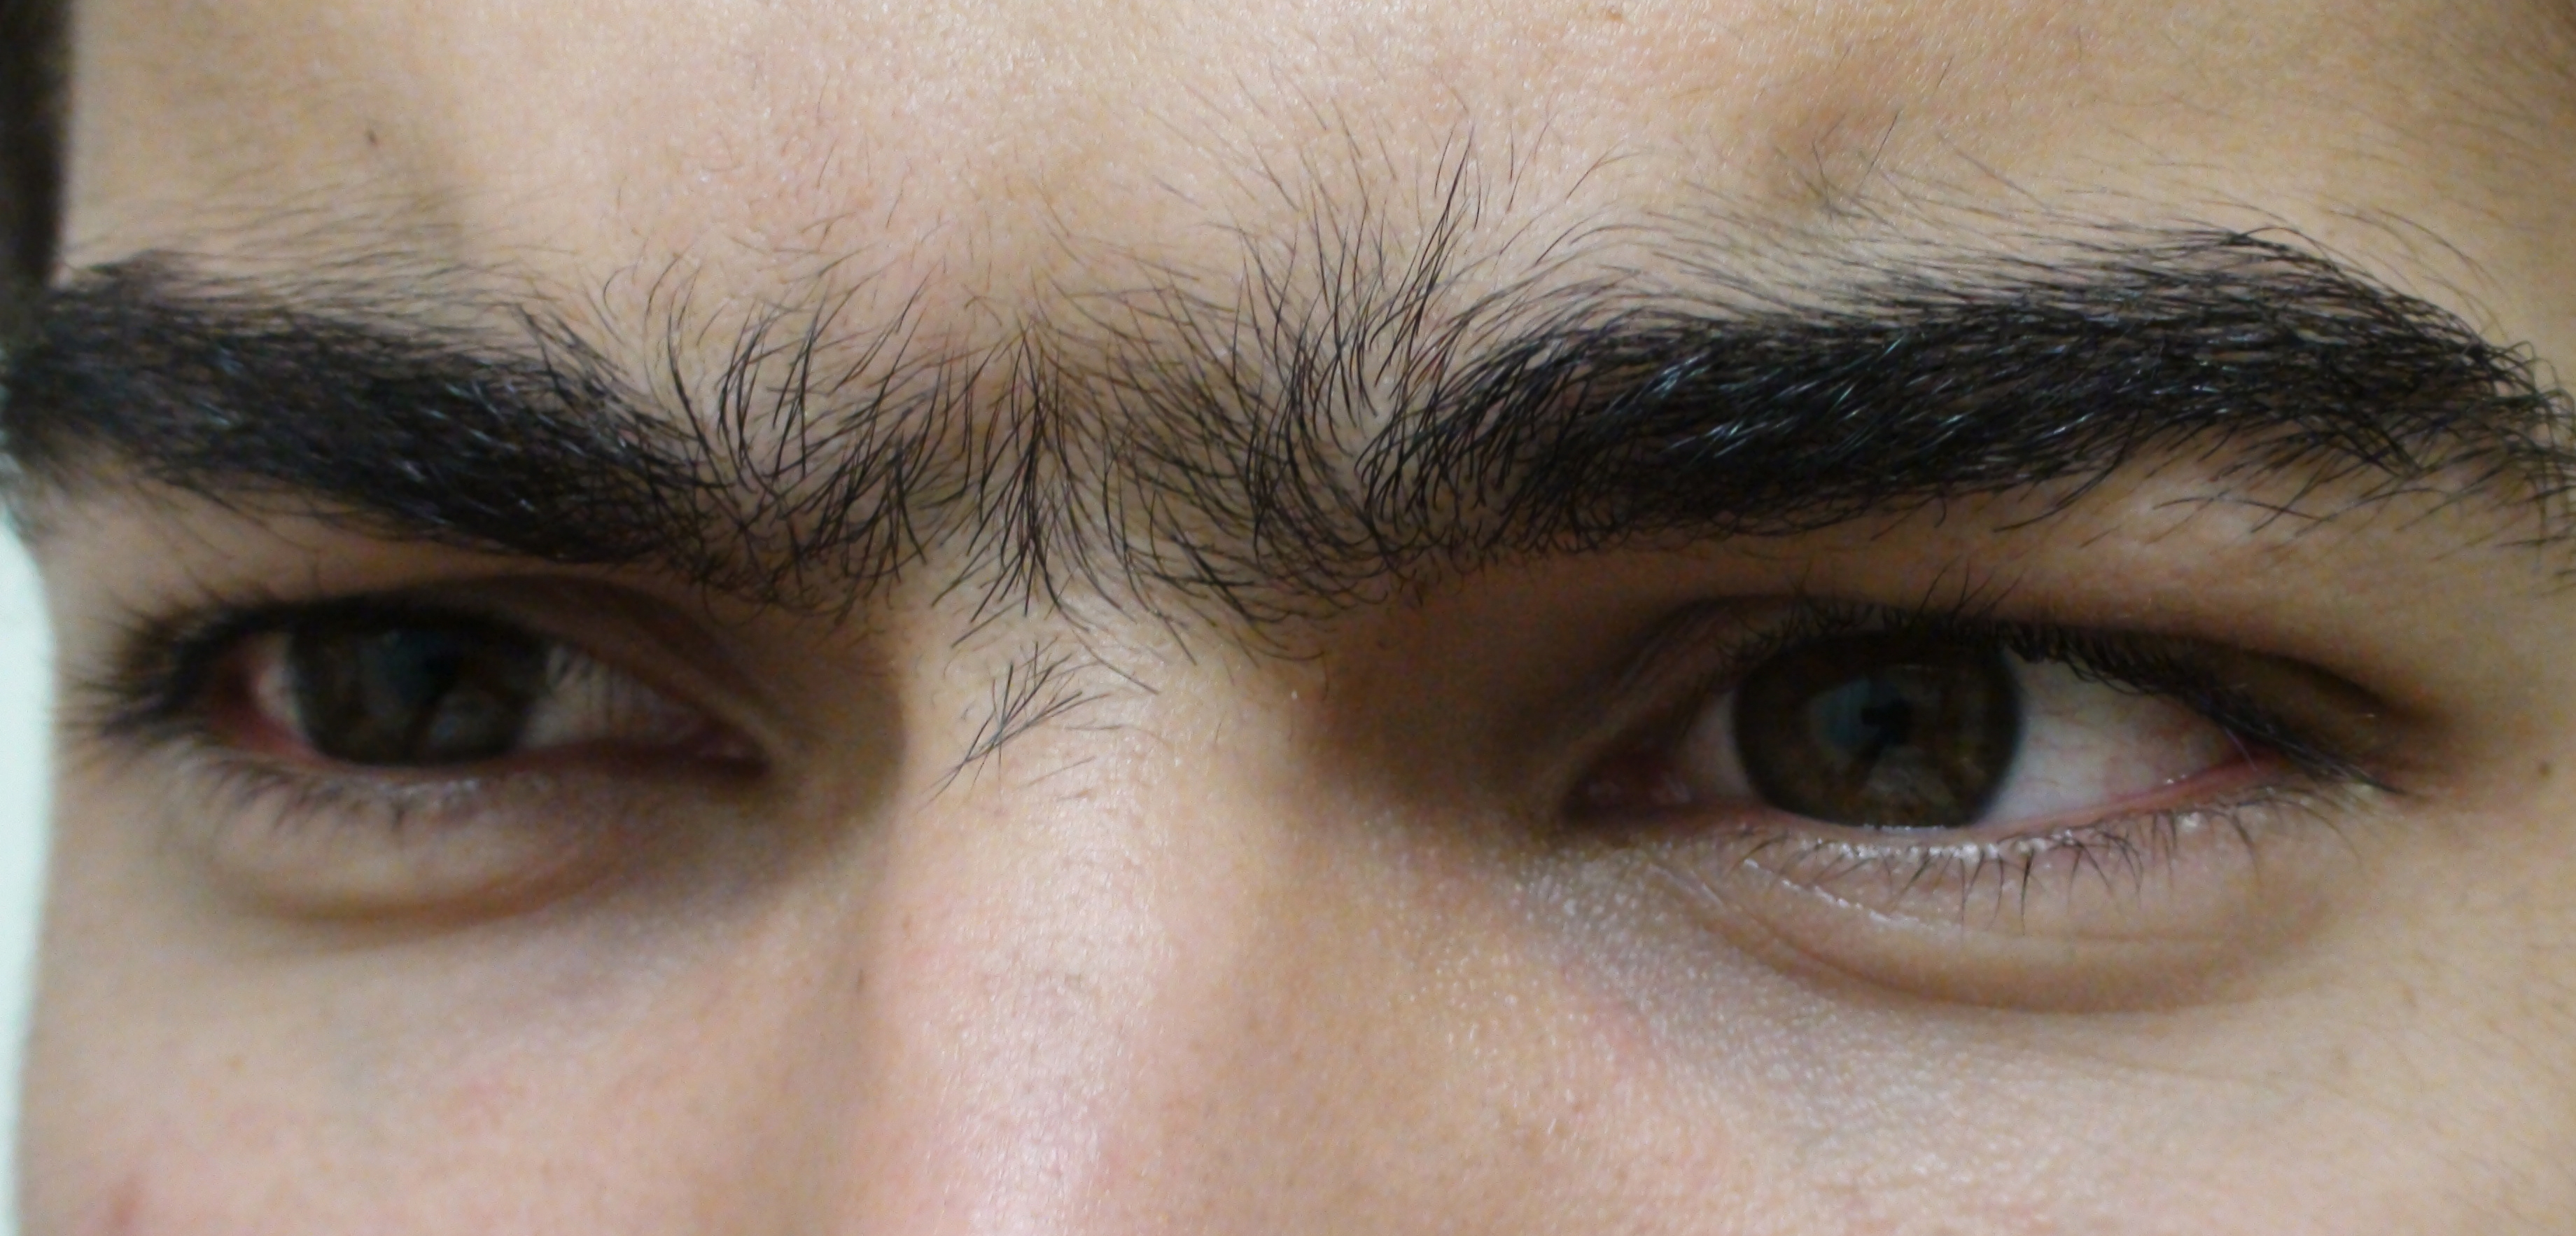 How much hair constitutes a unibrow?